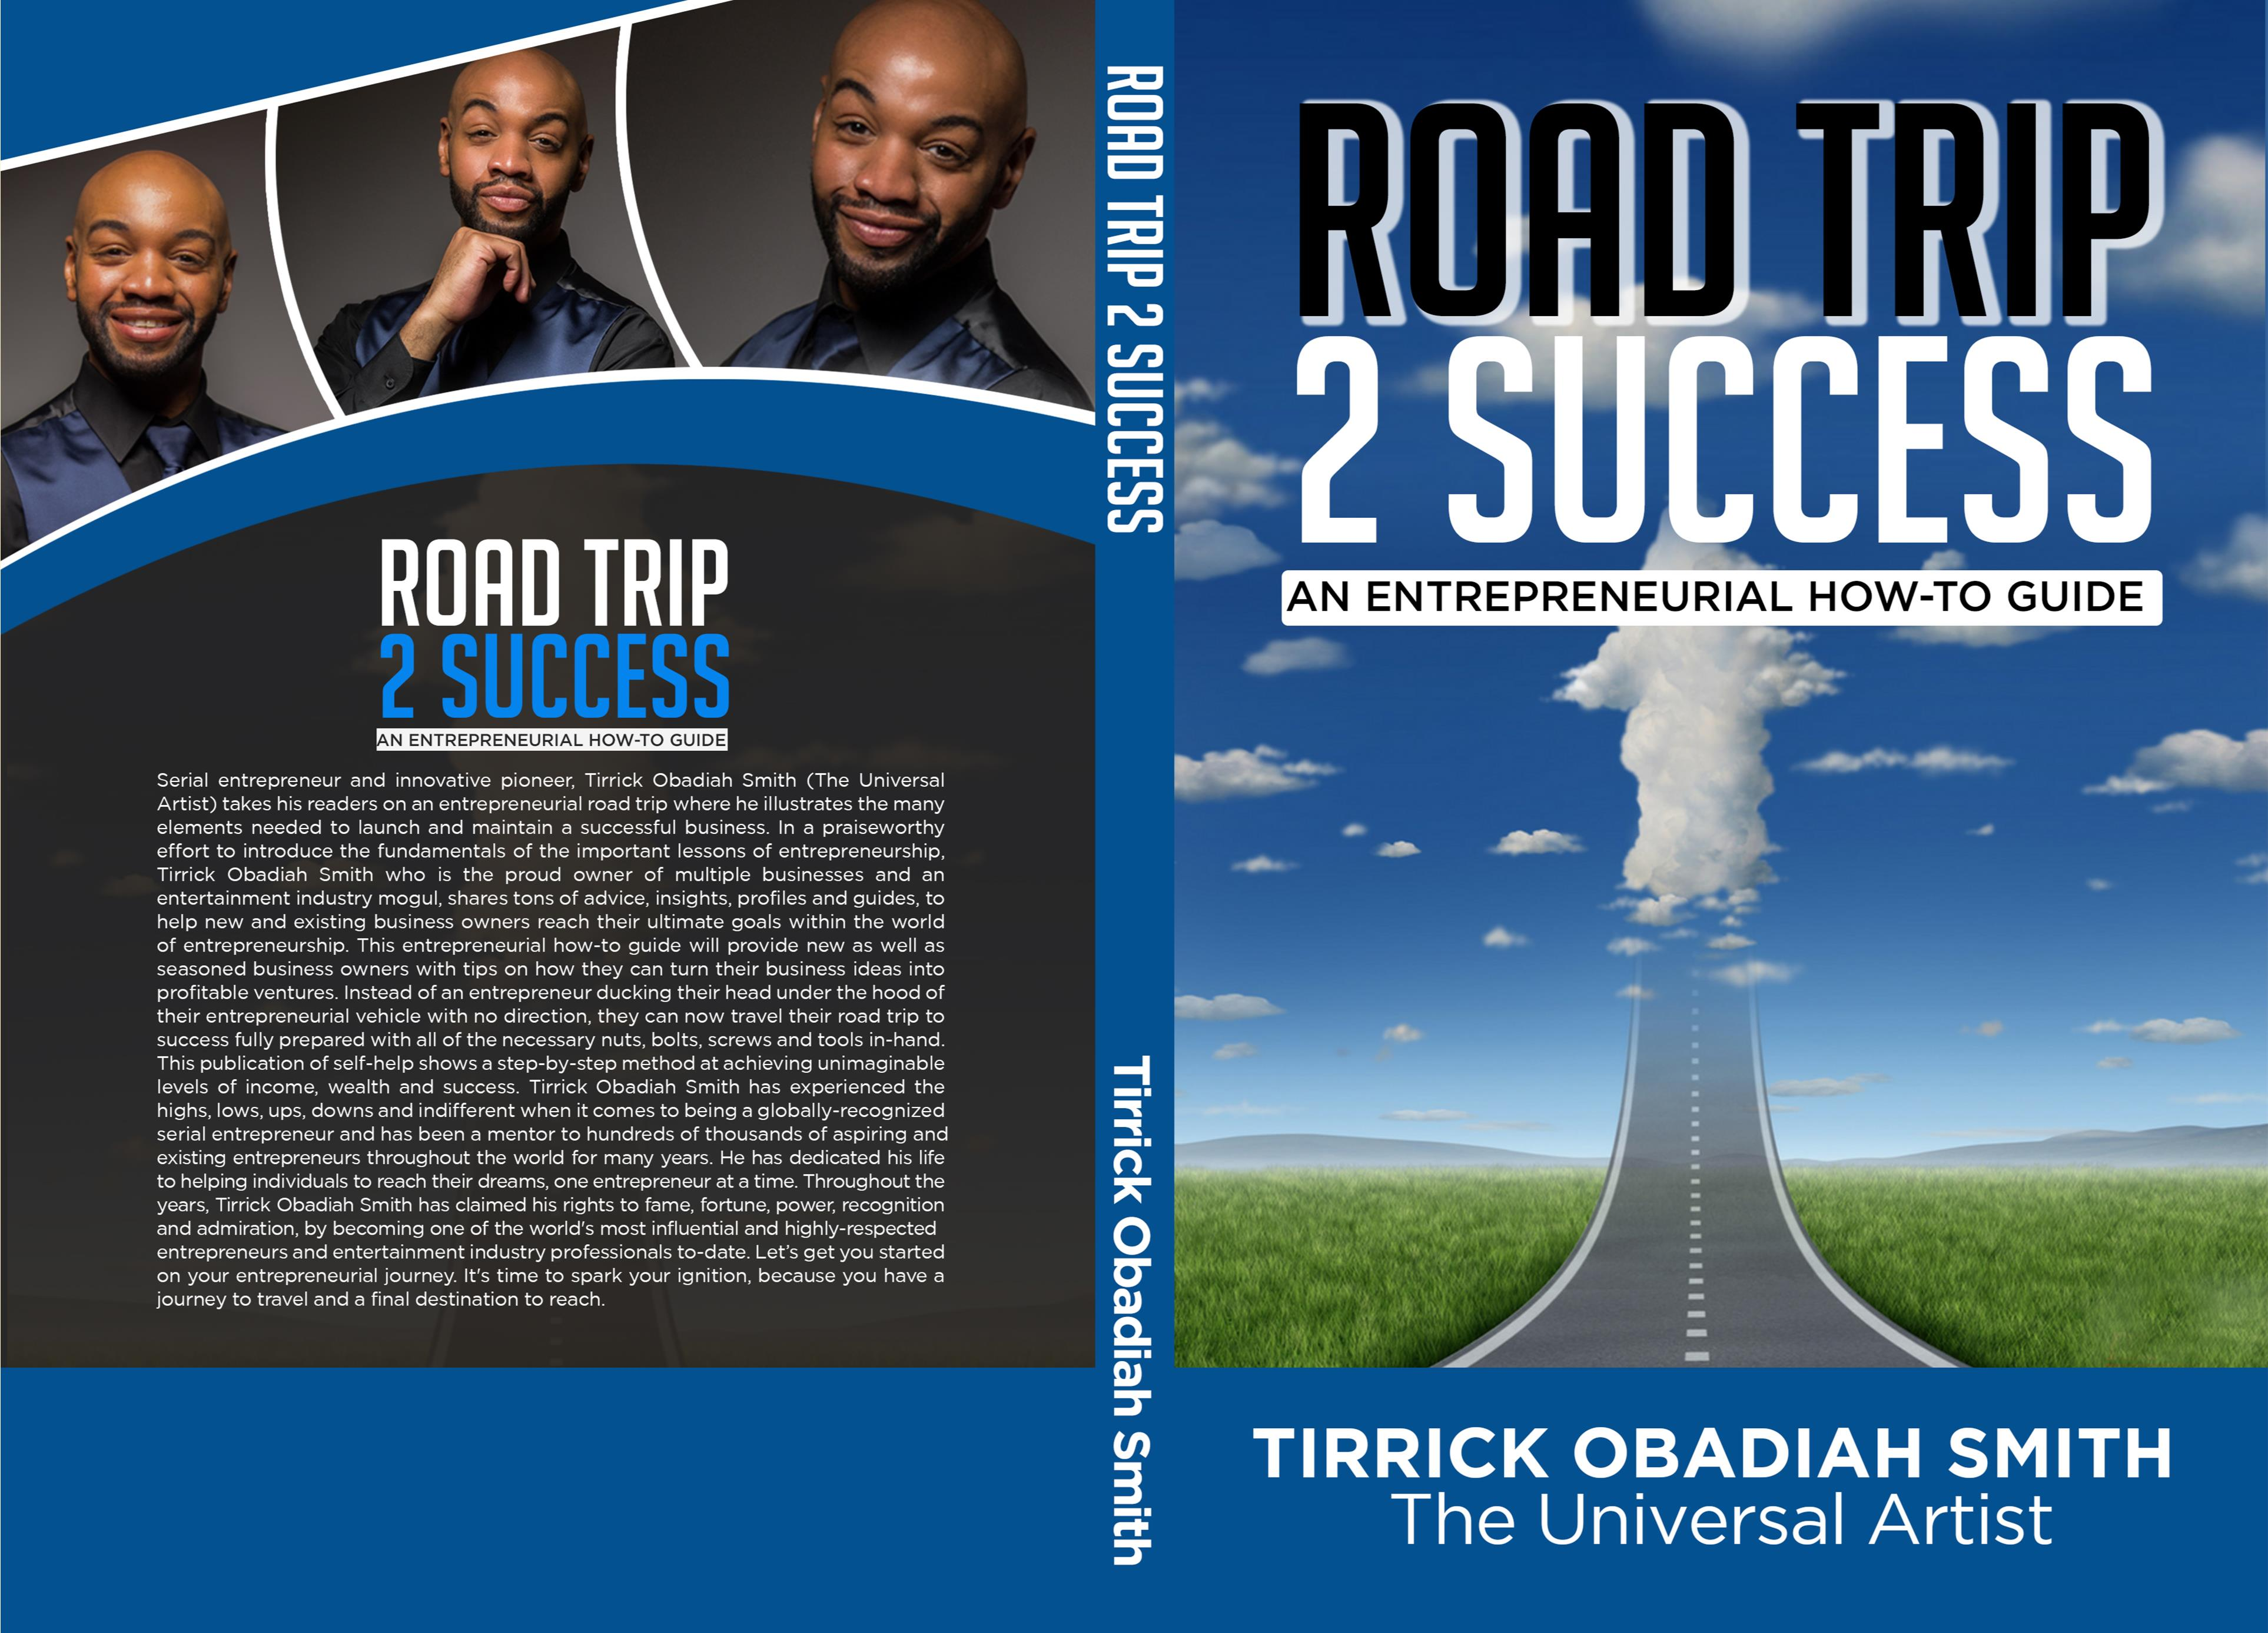 Road Trip 2 Success cover image